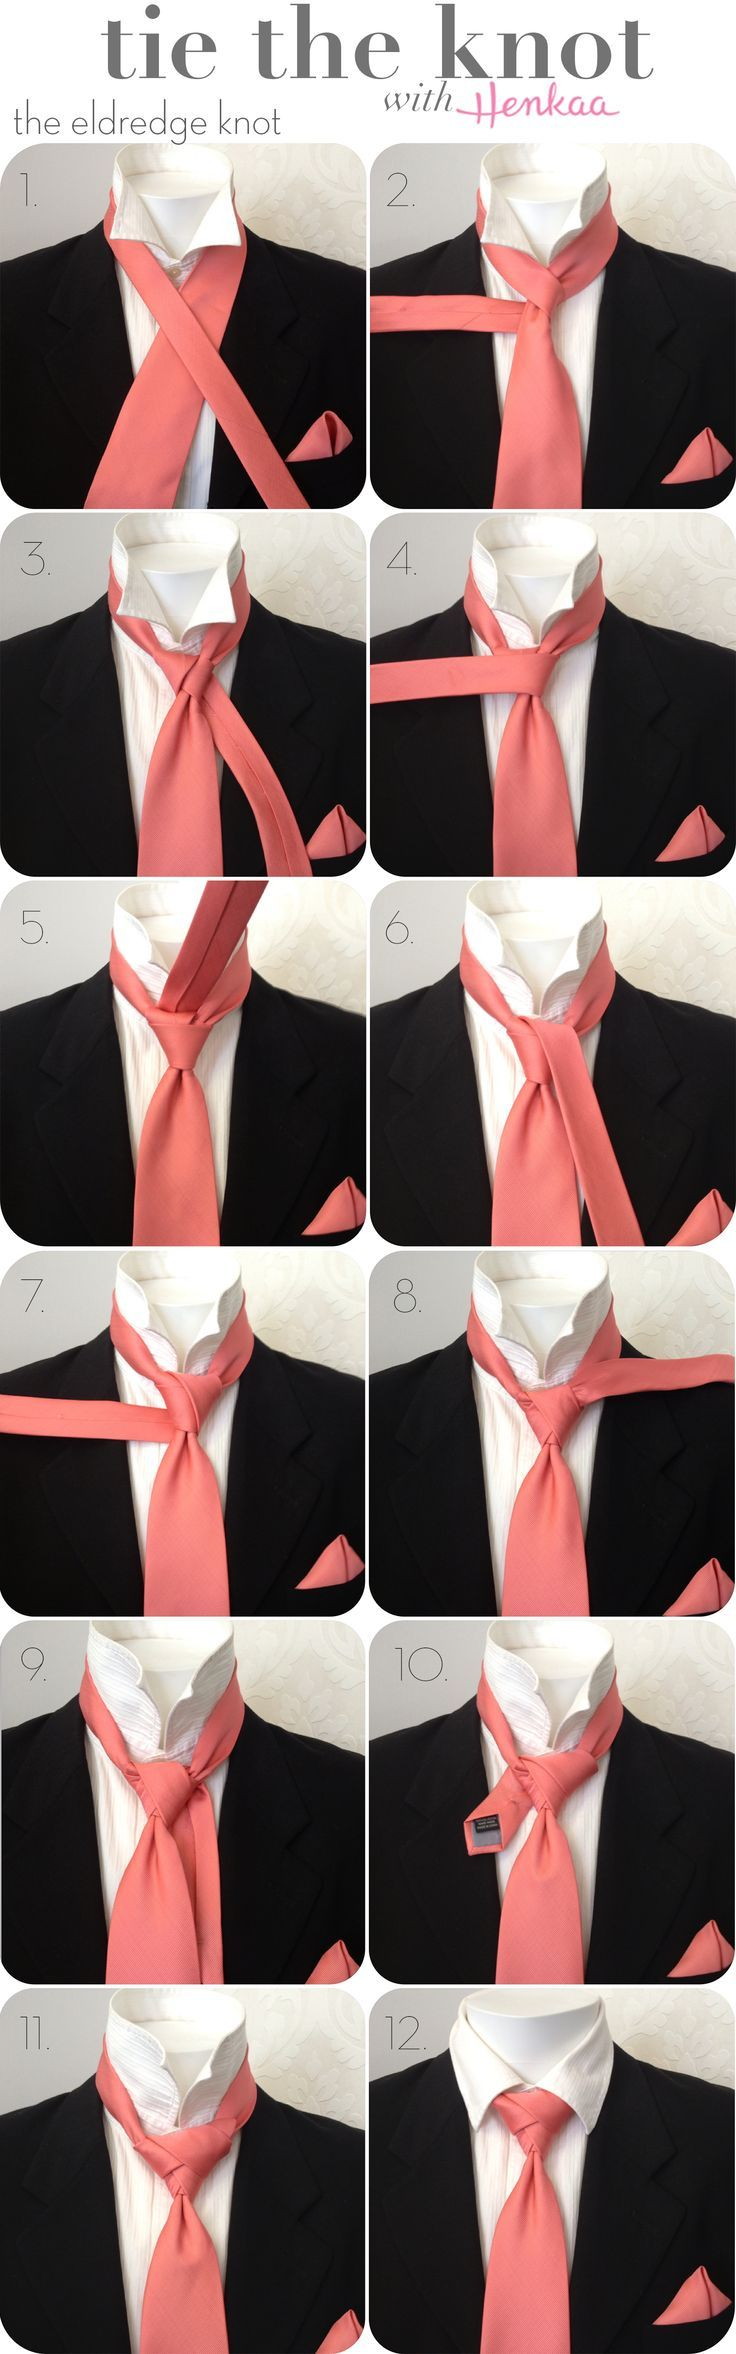 How to Tie a Necktie - Eldredge Knot - Click through for the how to Tie a Tie video. Also many more ways to tie a necktie, bow tie, ascot, and cravats. Enjoy.